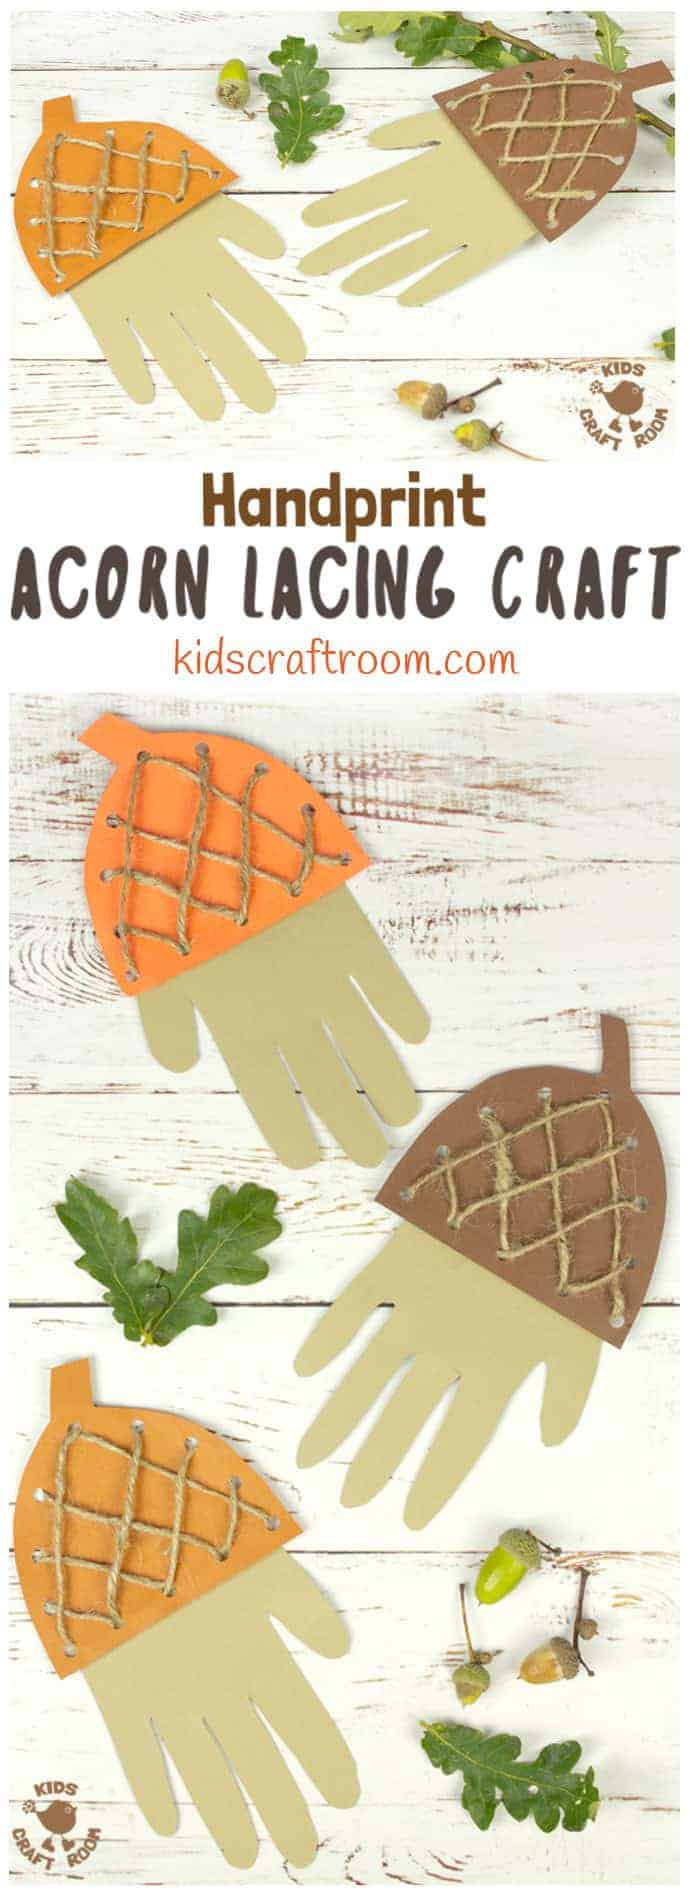 How adorable is this Handprint Acorn Lacing Craft? Acorn crafts are perfect for Autumn and this handprint acorn lets children lace and thread a textured acorn cap all the while building their fine motor skills in a fun way. A lovely lacing activity for preschoolers. #acorn #acorns #acorncrafts #kidscrafts #lacingcraft #lacing #threading #finemotorskills #Fallcrafts #Autumncrafts #handprint #handprintcrafts #Fall #Autumn #lacingactivity #kidsactivities #lacingactivity via @KidsCraftRoom